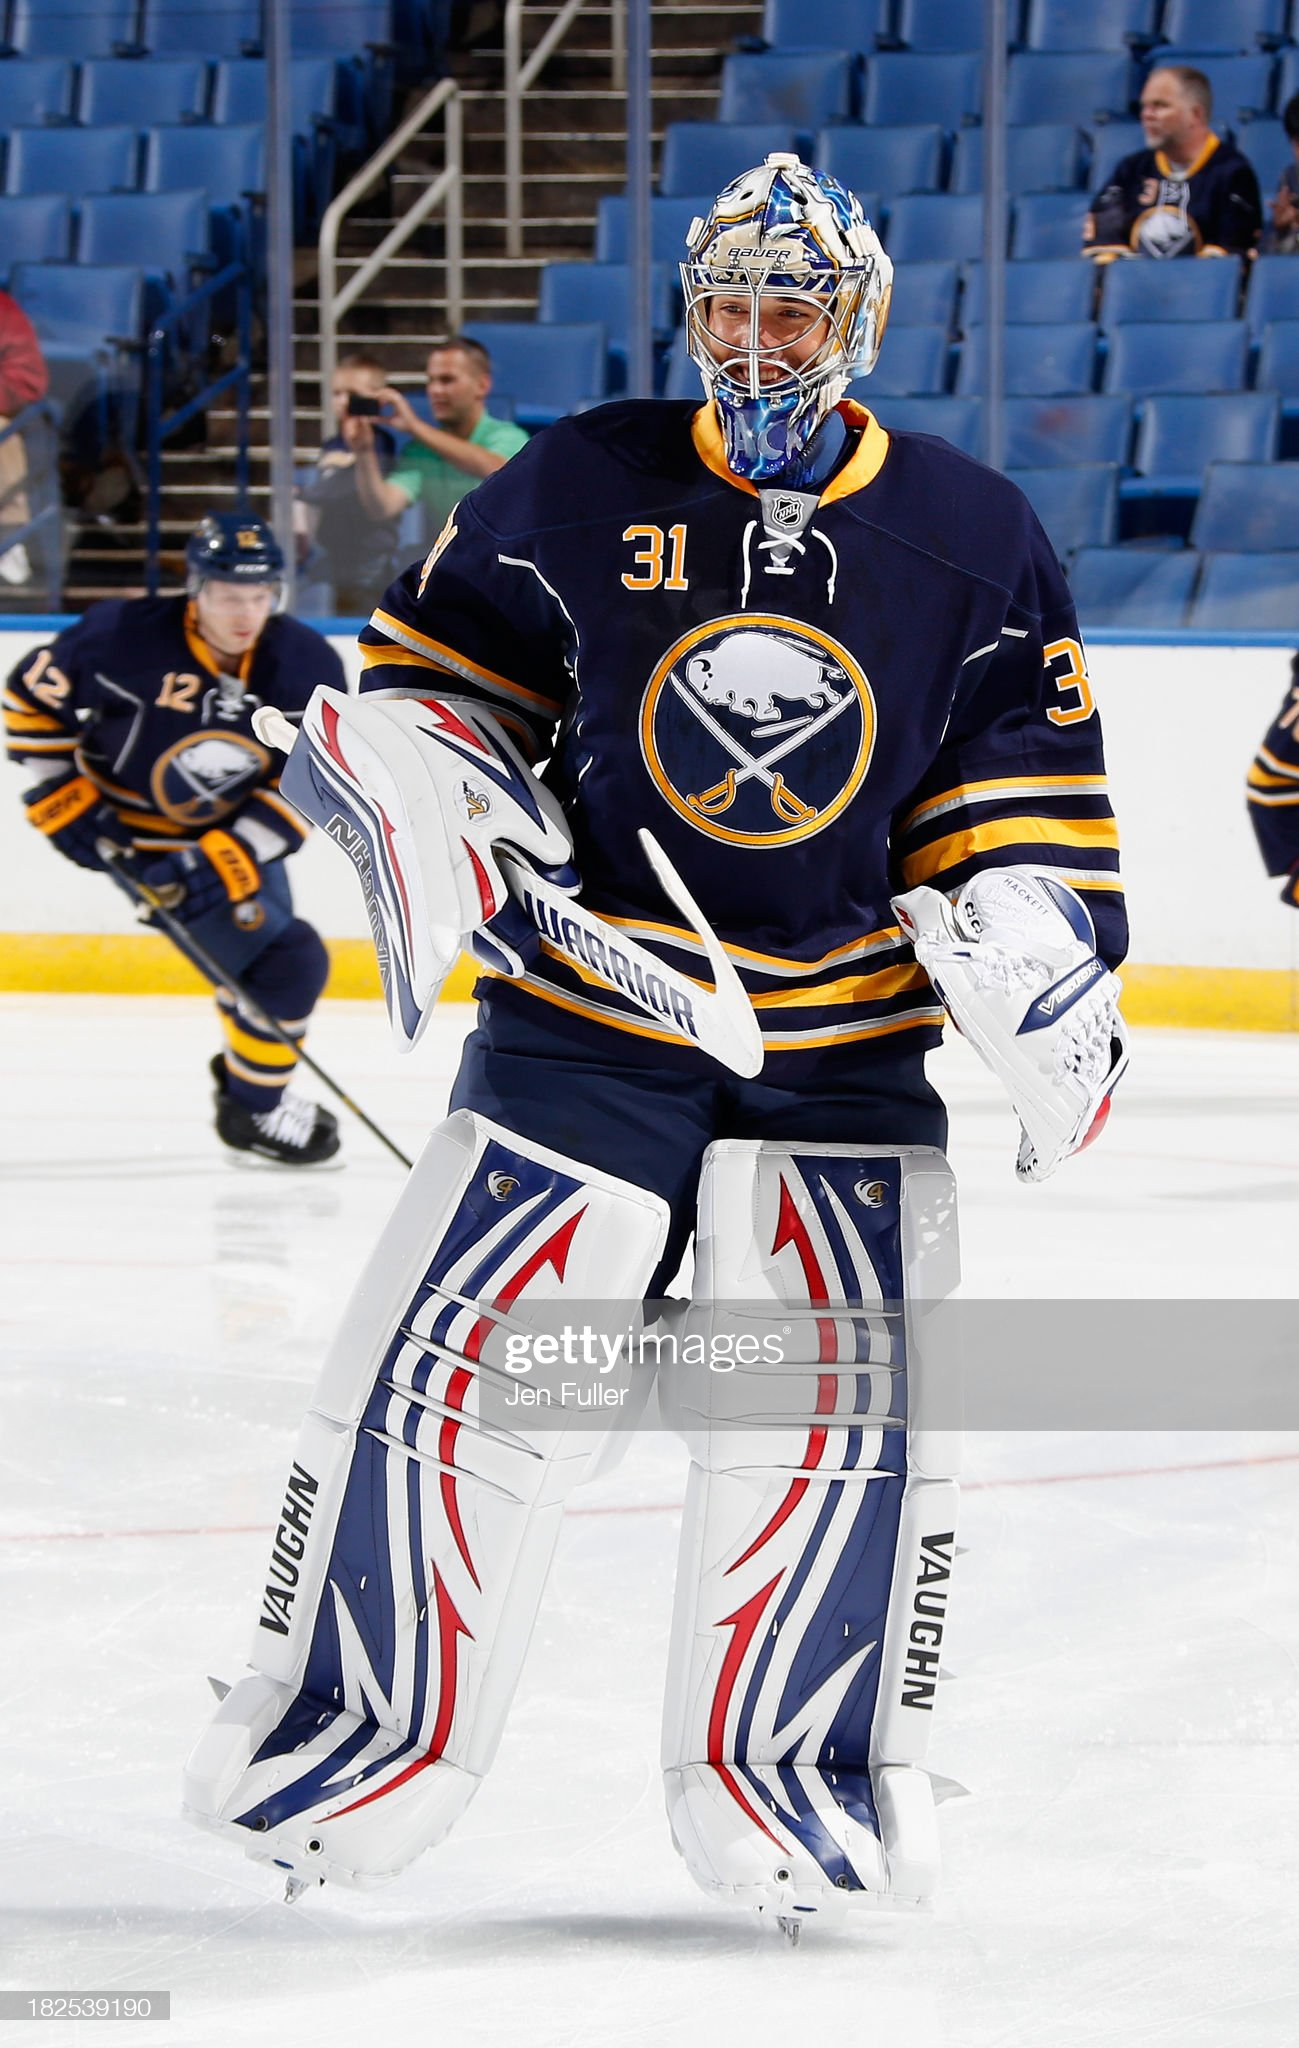 matt-hackett-of-the-buffalo-sabres-warms